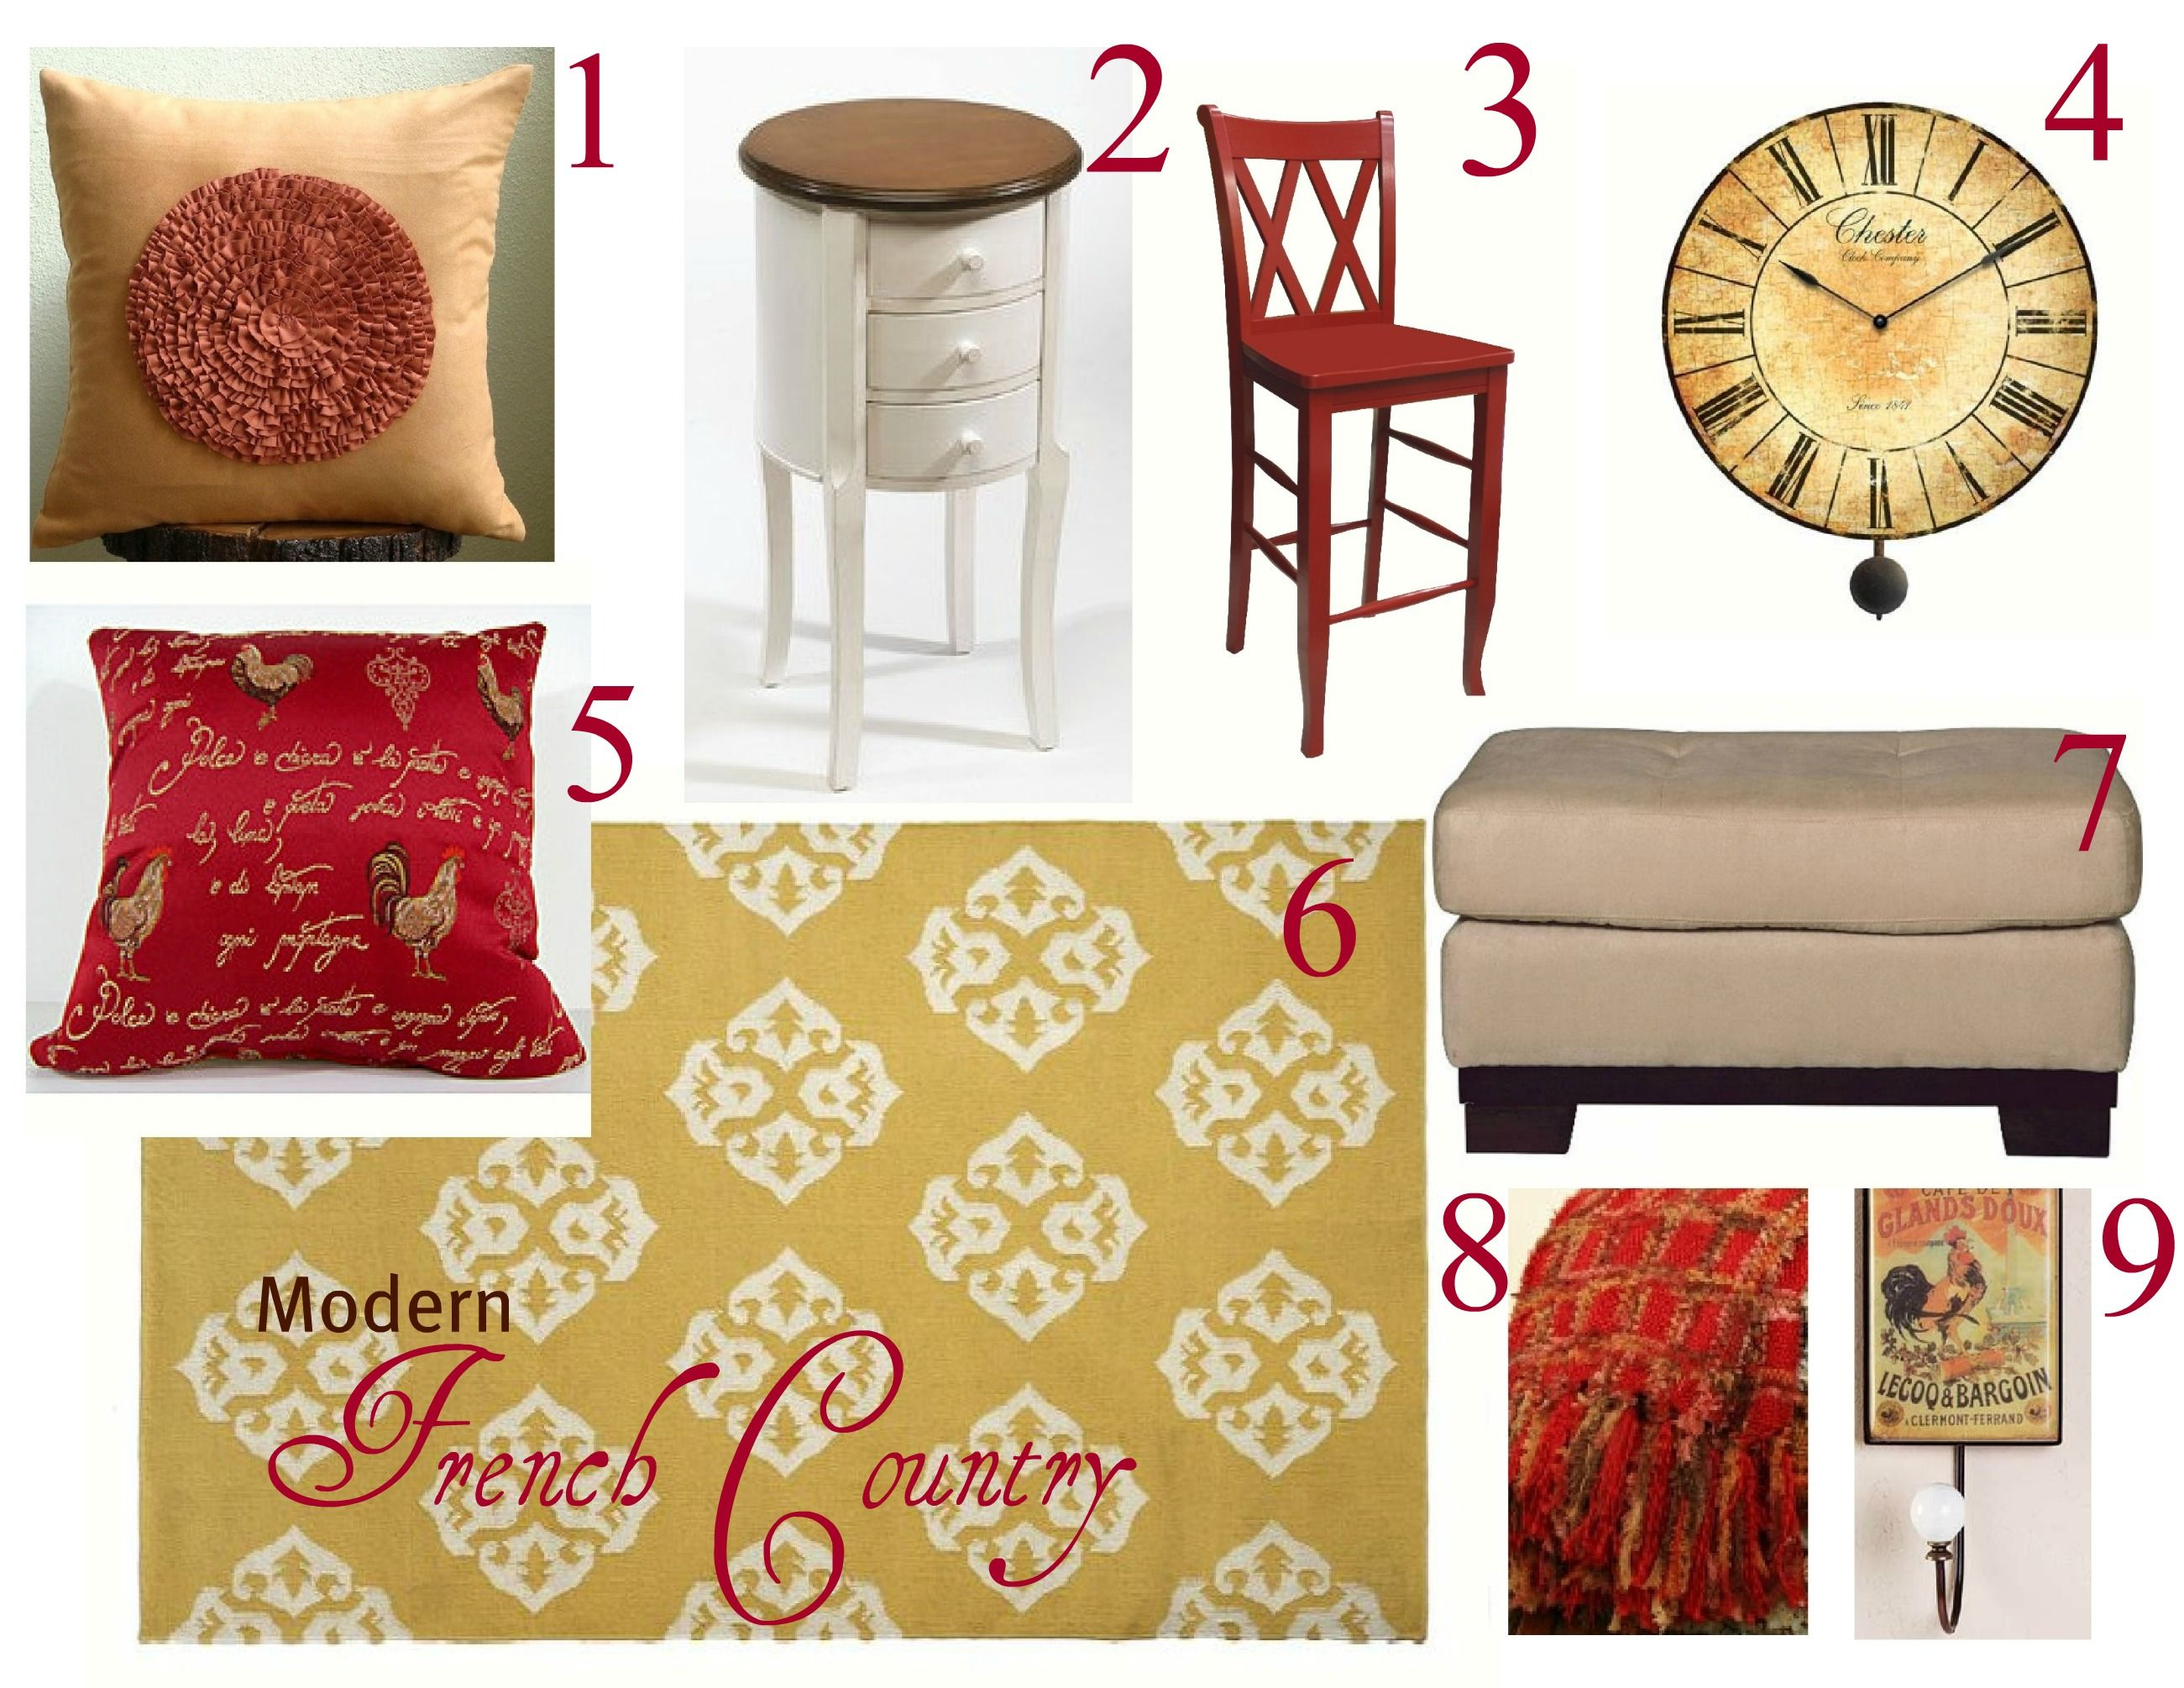 Modern French Country Mood Board In Rust & Butter Theme